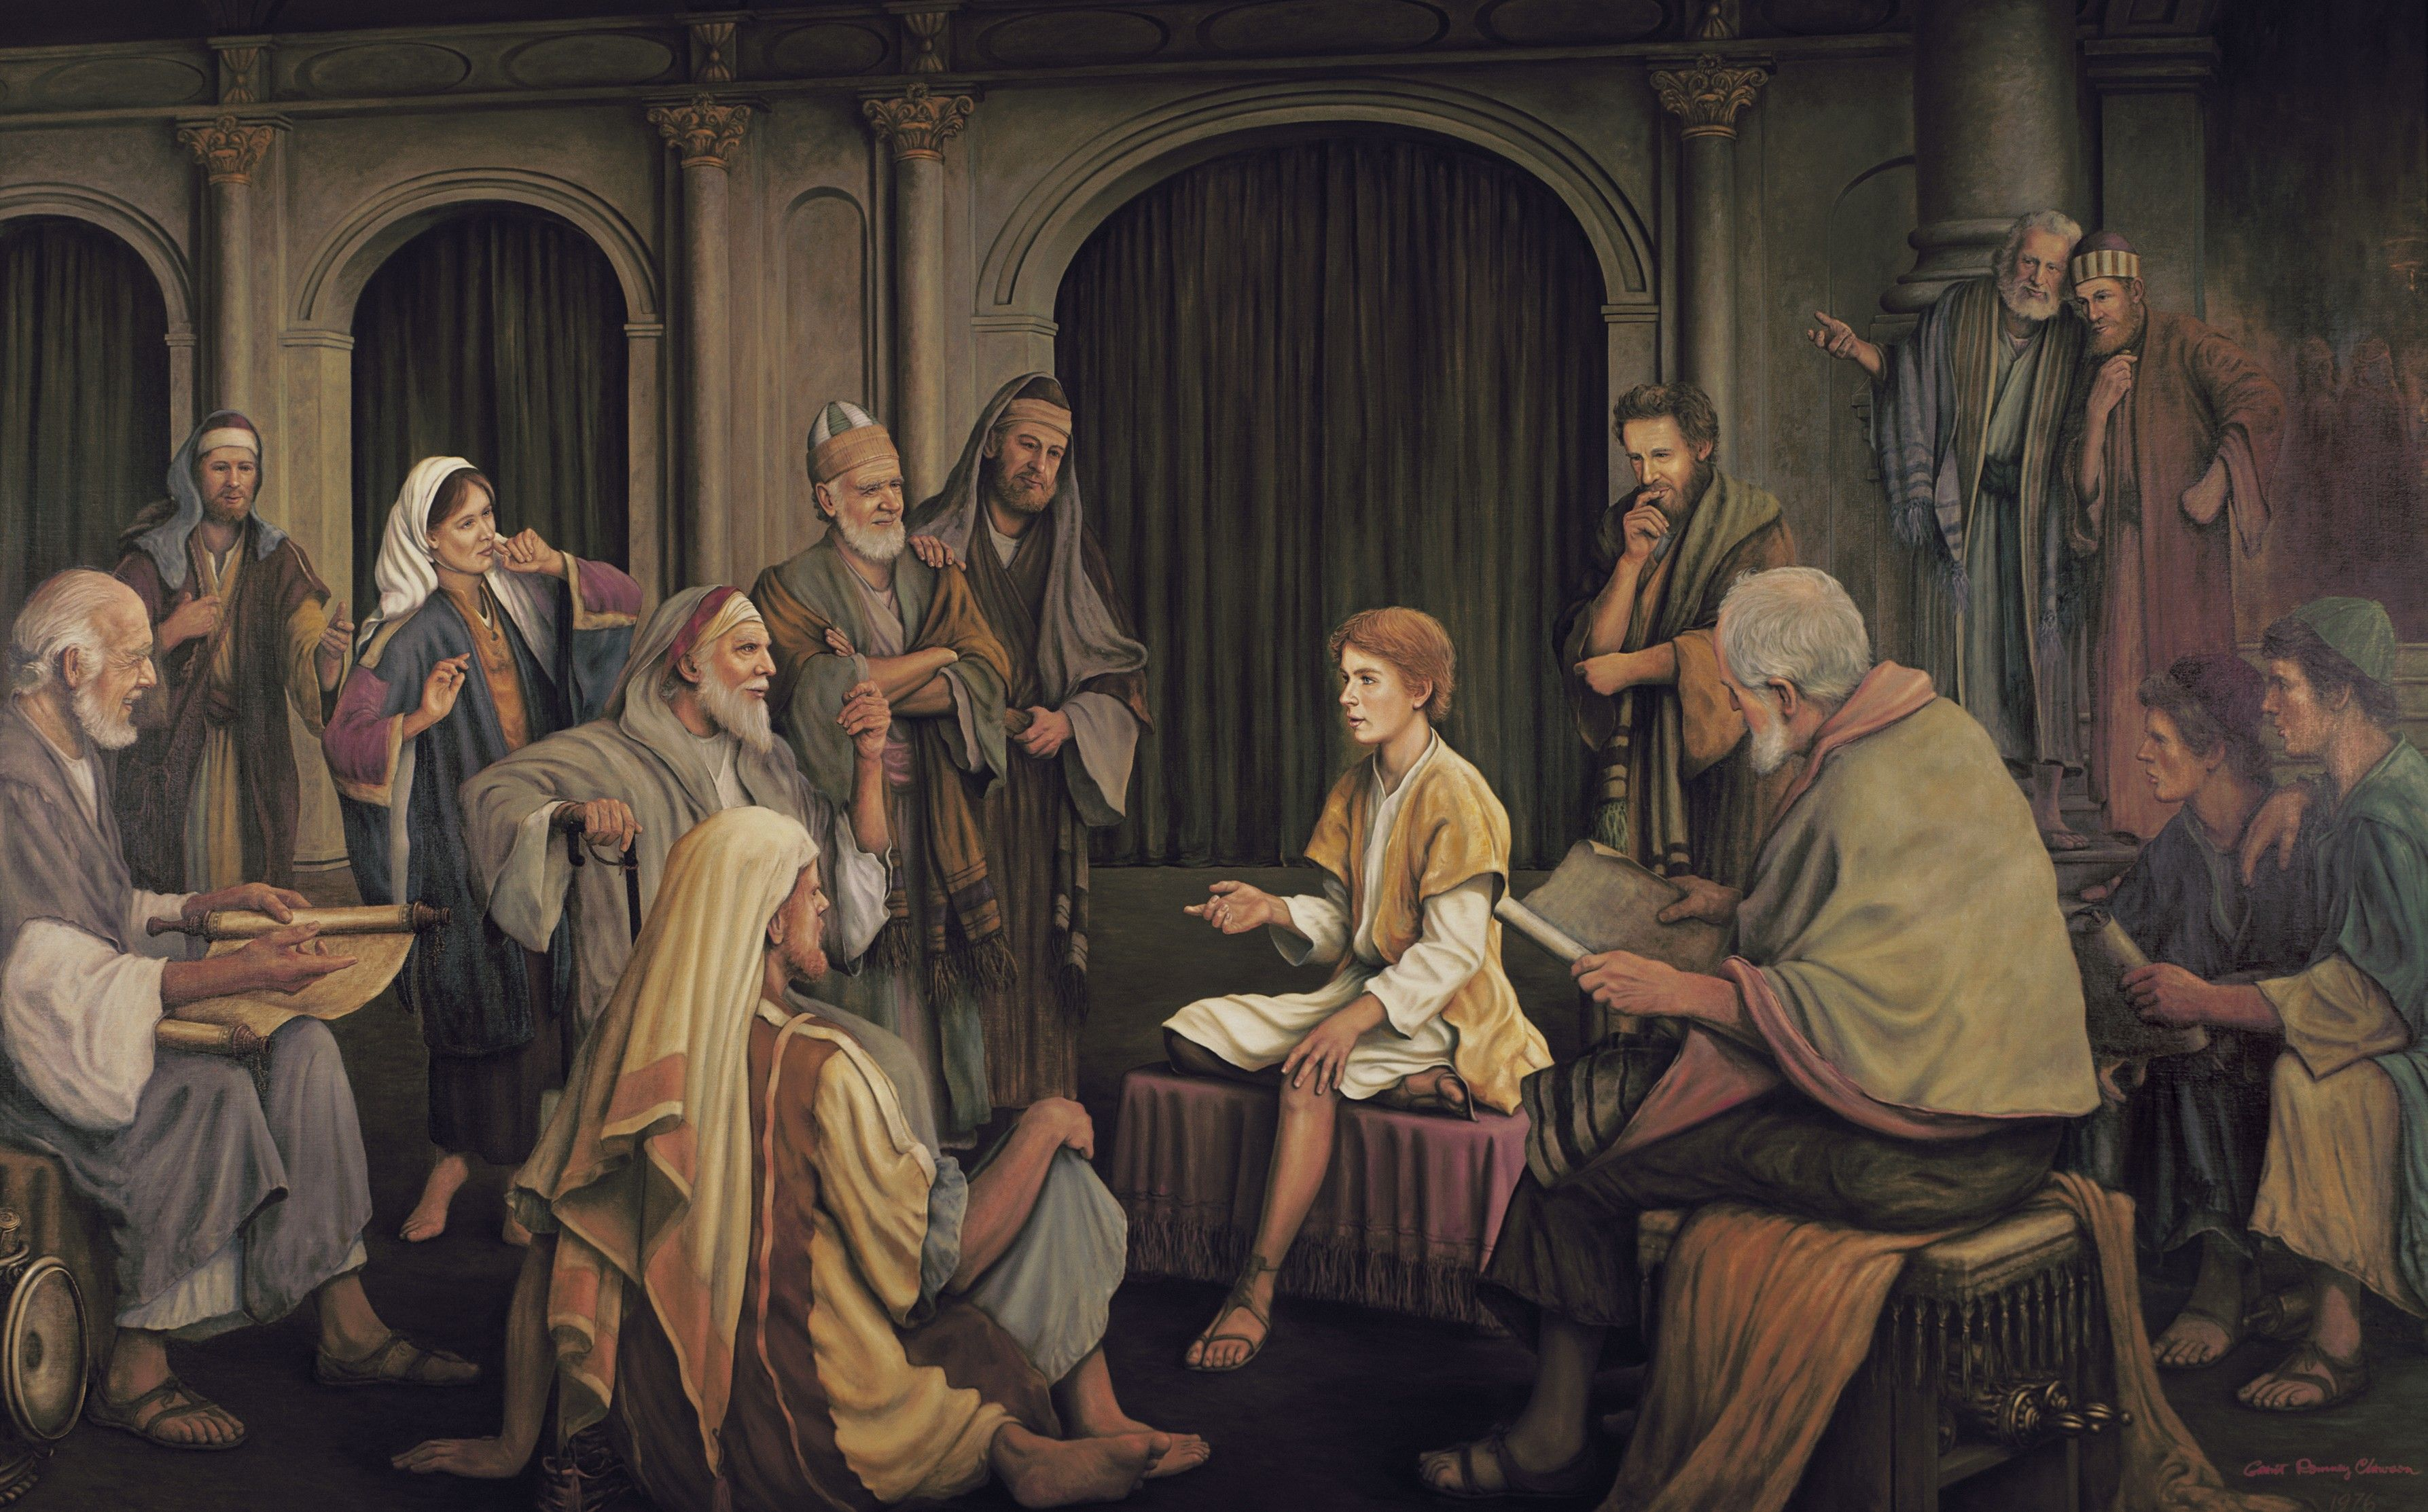 Jesus Teaching the Elders in the Temple, by Grant Romney Clawson